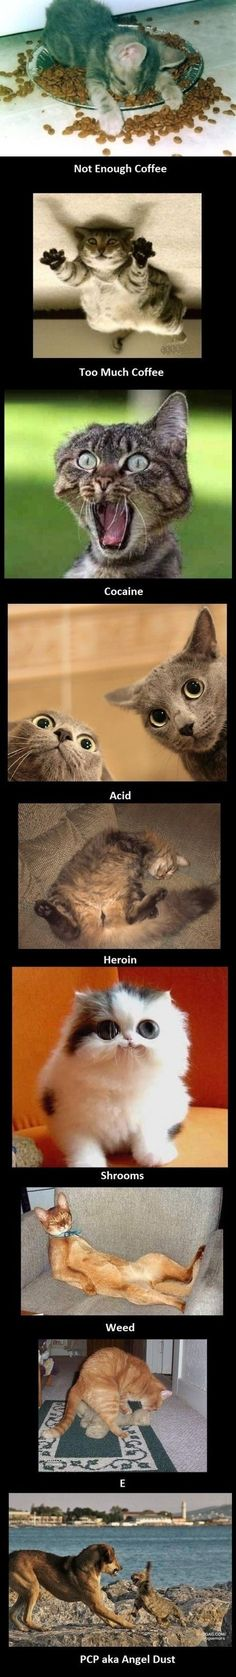 Cats on Drugs